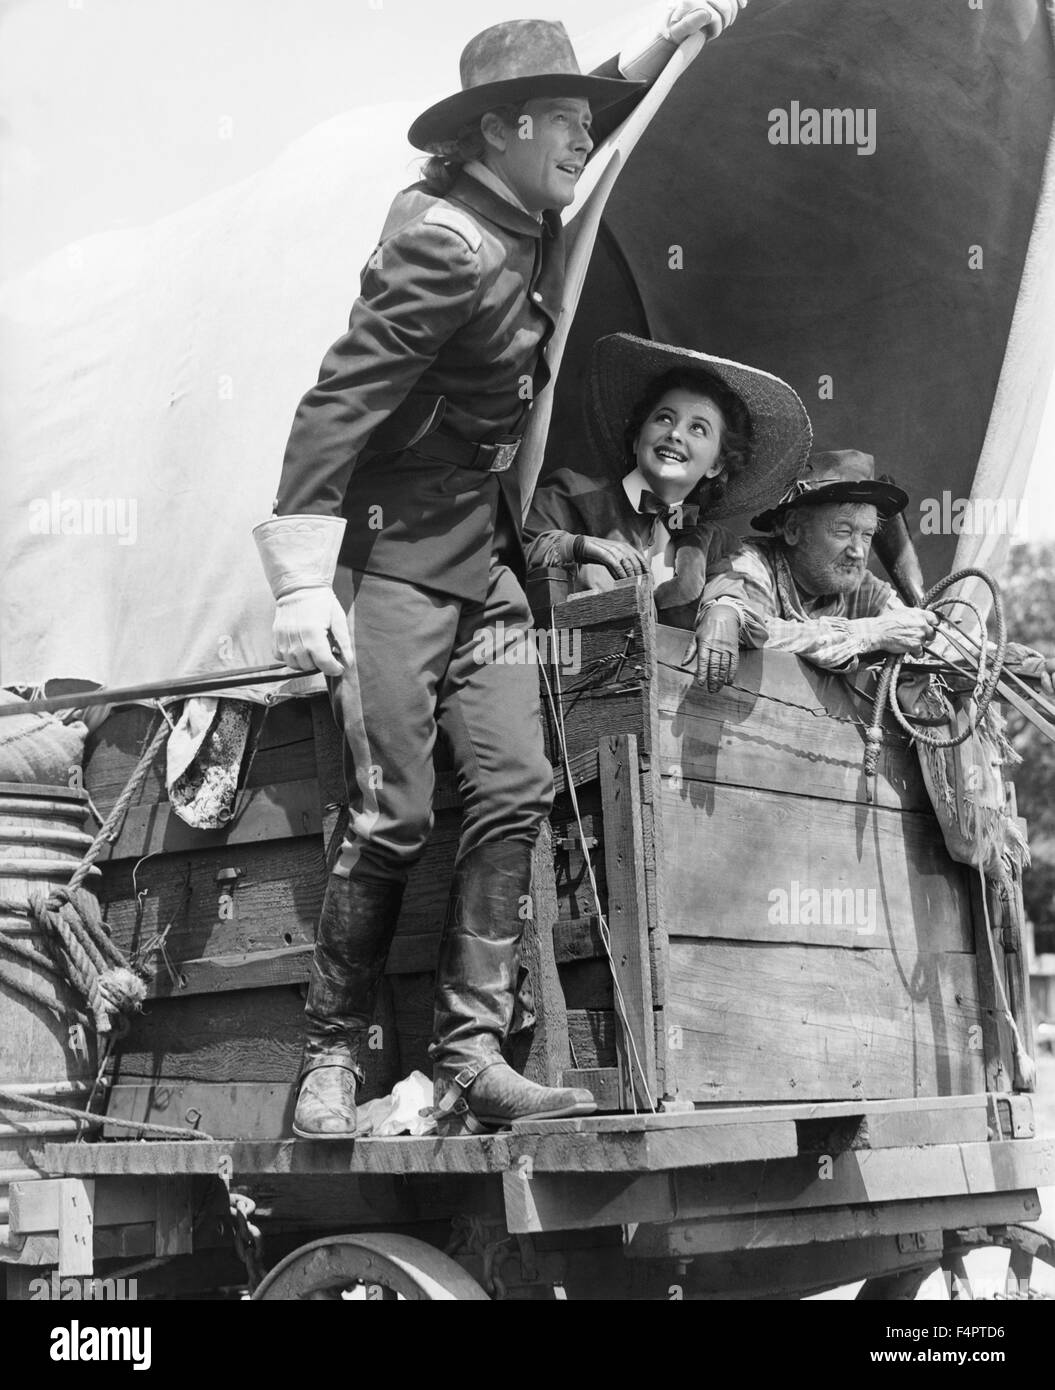 Errol Flynn and Olivia de Havilland / They Died with Their Boots On / 1941 directed by Raoul Walsh  [Warner Bros. - Stock Image